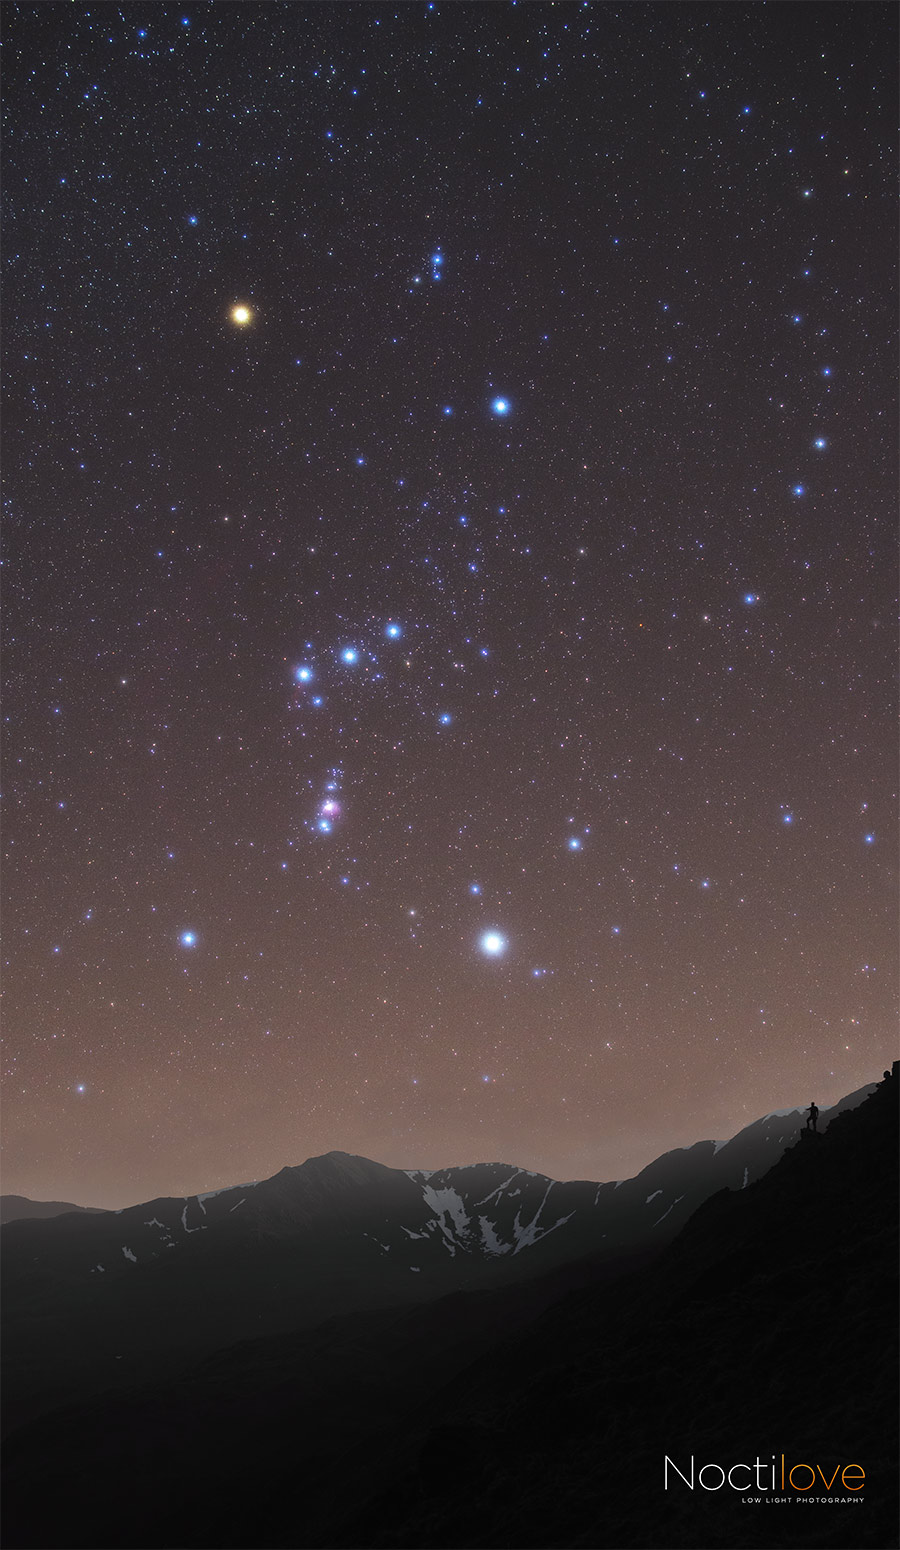 Standing on the shoulders of giants - Orion rises over Helvellyn in the English Lake District